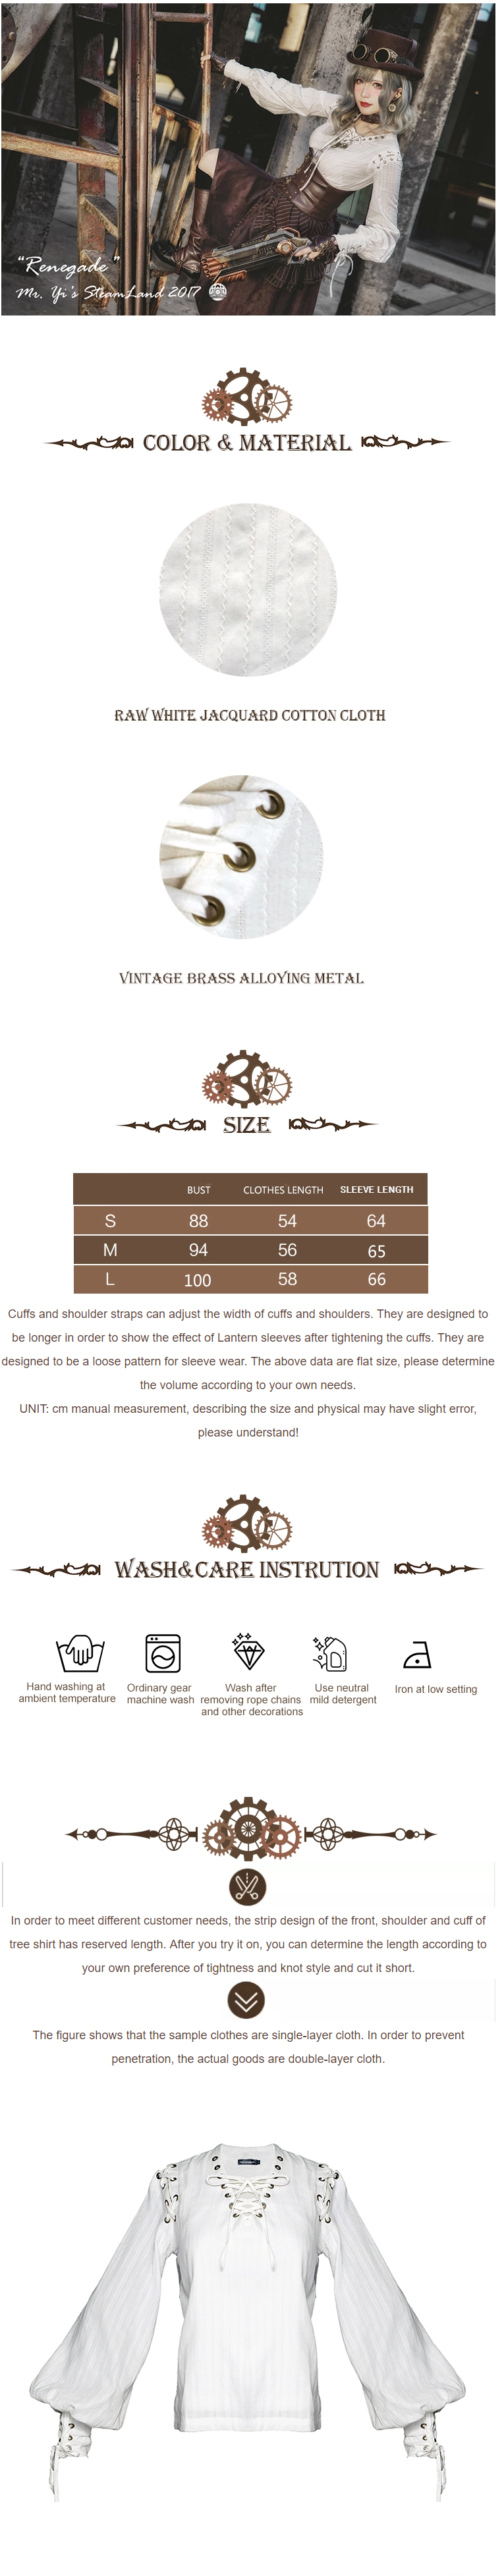 2019 White Custom Cotton Designers Women's Long Sleeve Print Fashion Ladies T Shirt Clothes Tops Womens Blouses